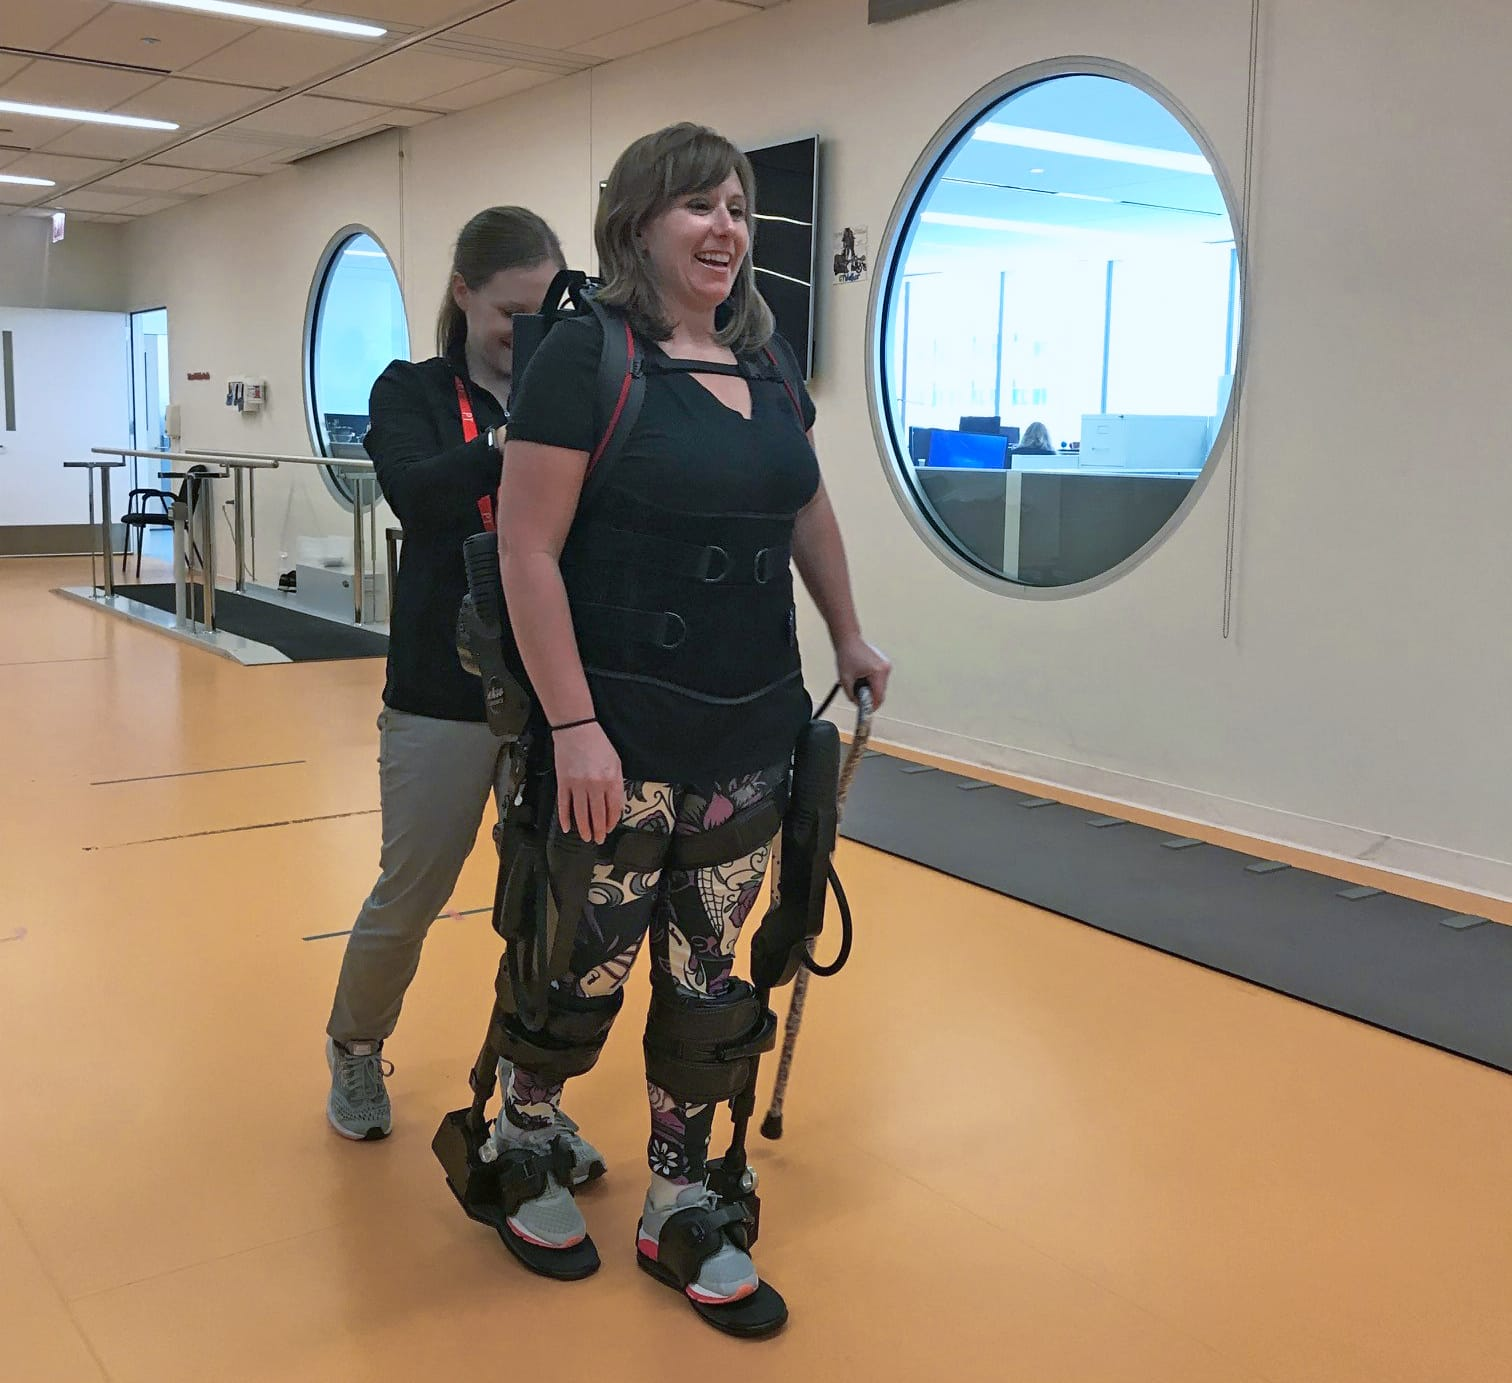 Image of Megan Burns taking assisted steps with Ekso Bionics' exoskeleton suit.